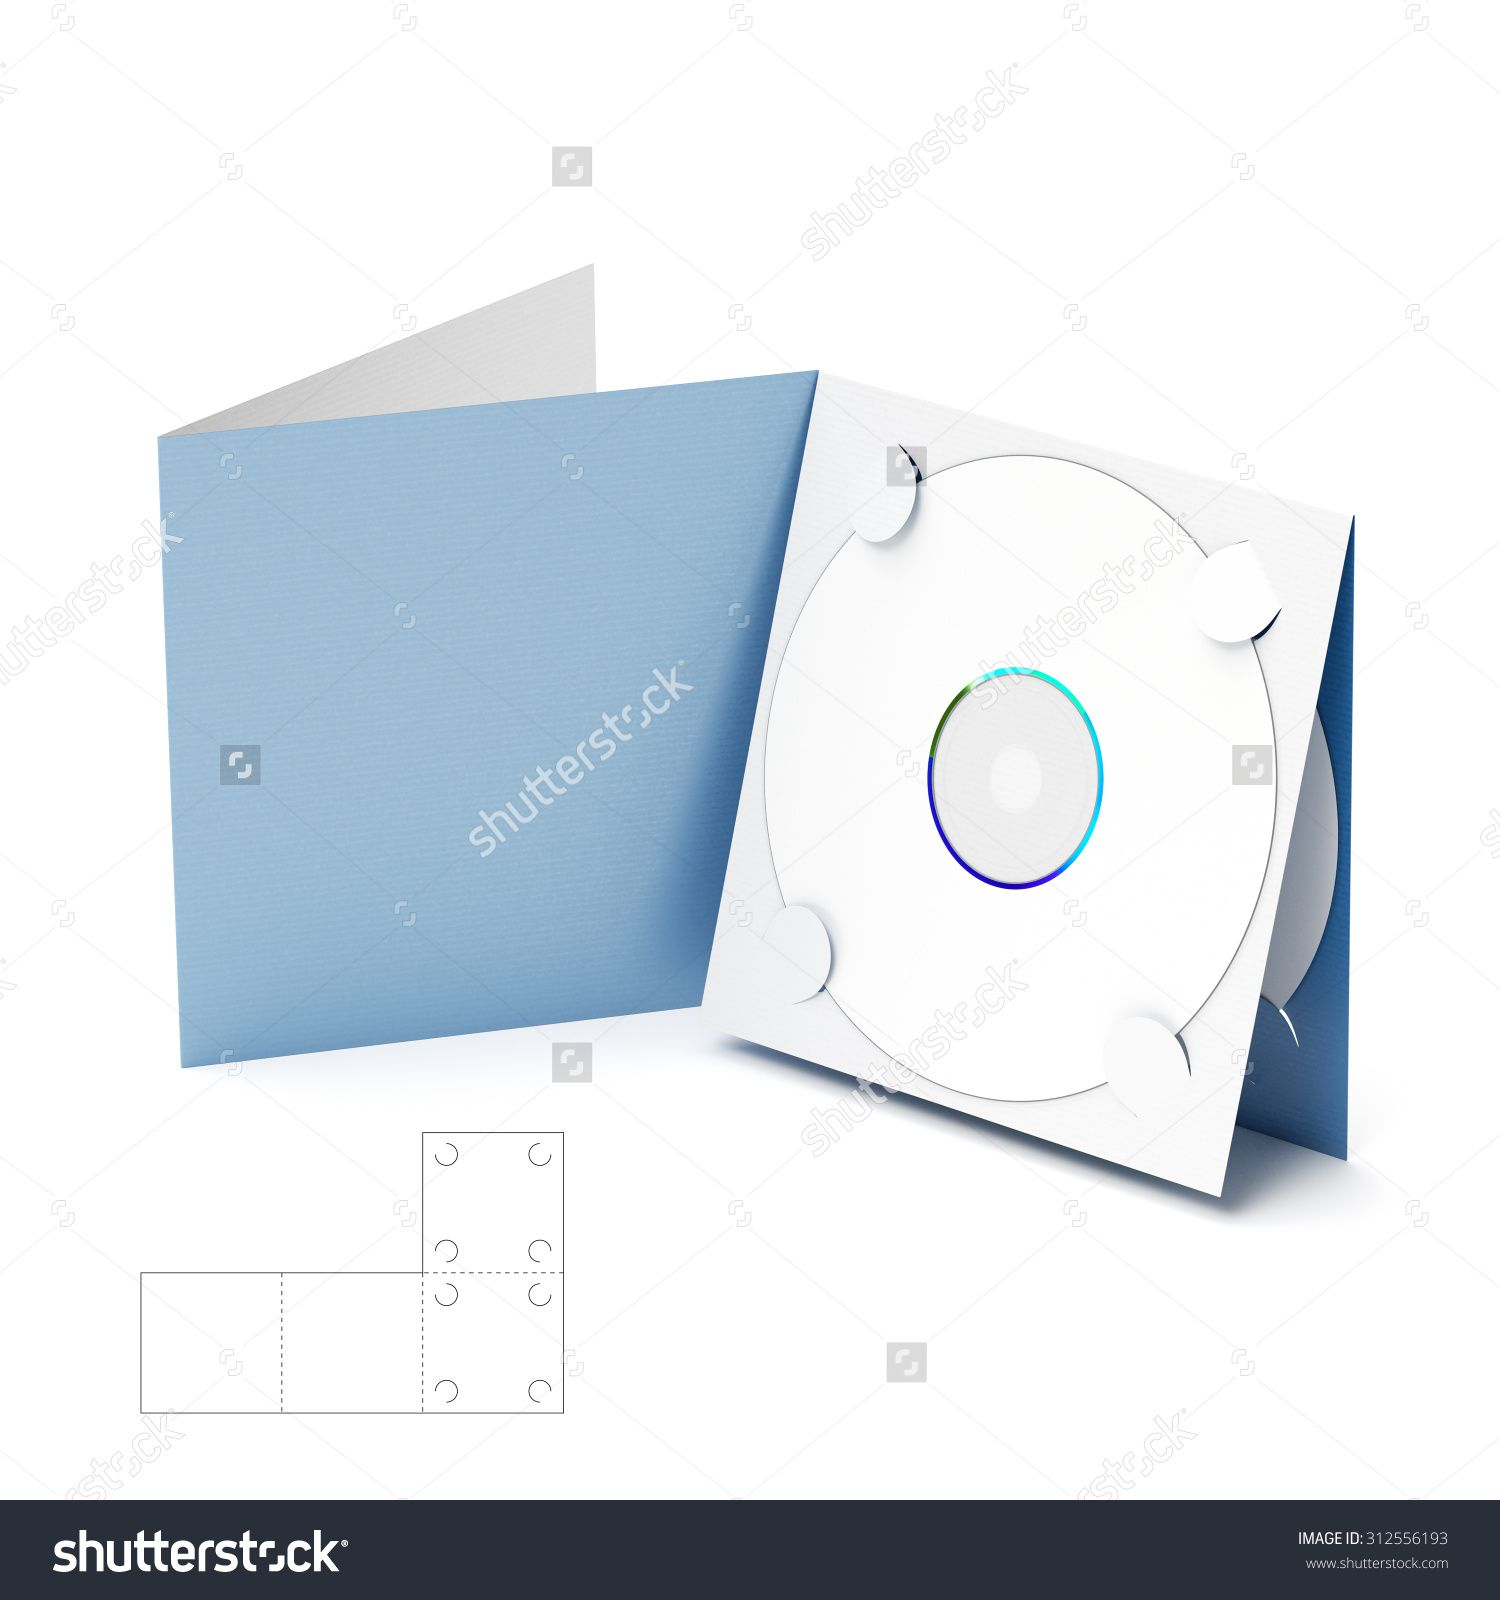 Cd & Dvd Folder Brochure With Die Cut Layout Stock Photo 312556193 ...